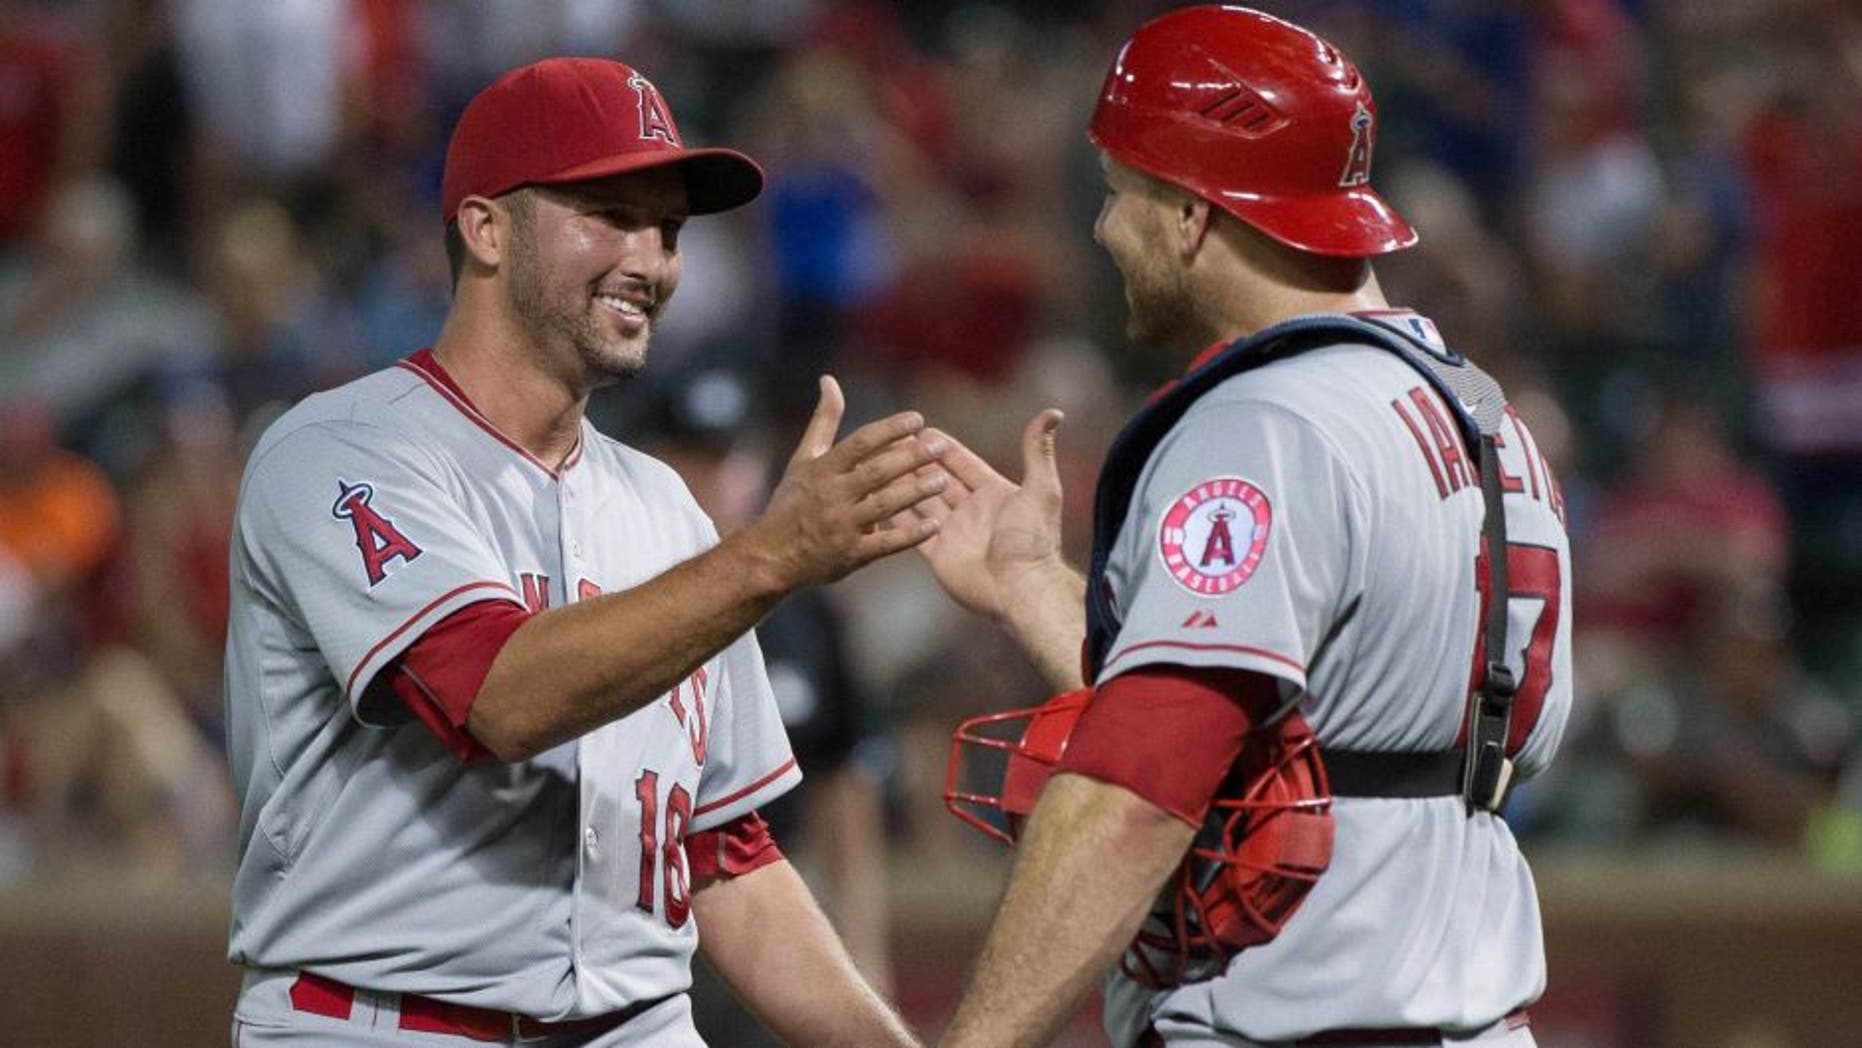 Jul 5, 2015; Arlington, TX, USA; Los Angeles Angels relief pitcher Huston Street (16) and catcher Chris Iannetta (17) celebrate the win over the Texas Rangers at Globe Life Park in Arlington. The Angels defeated the Rangers 12-6. Mandatory Credit: Jerome Miron-USA TODAY Sports